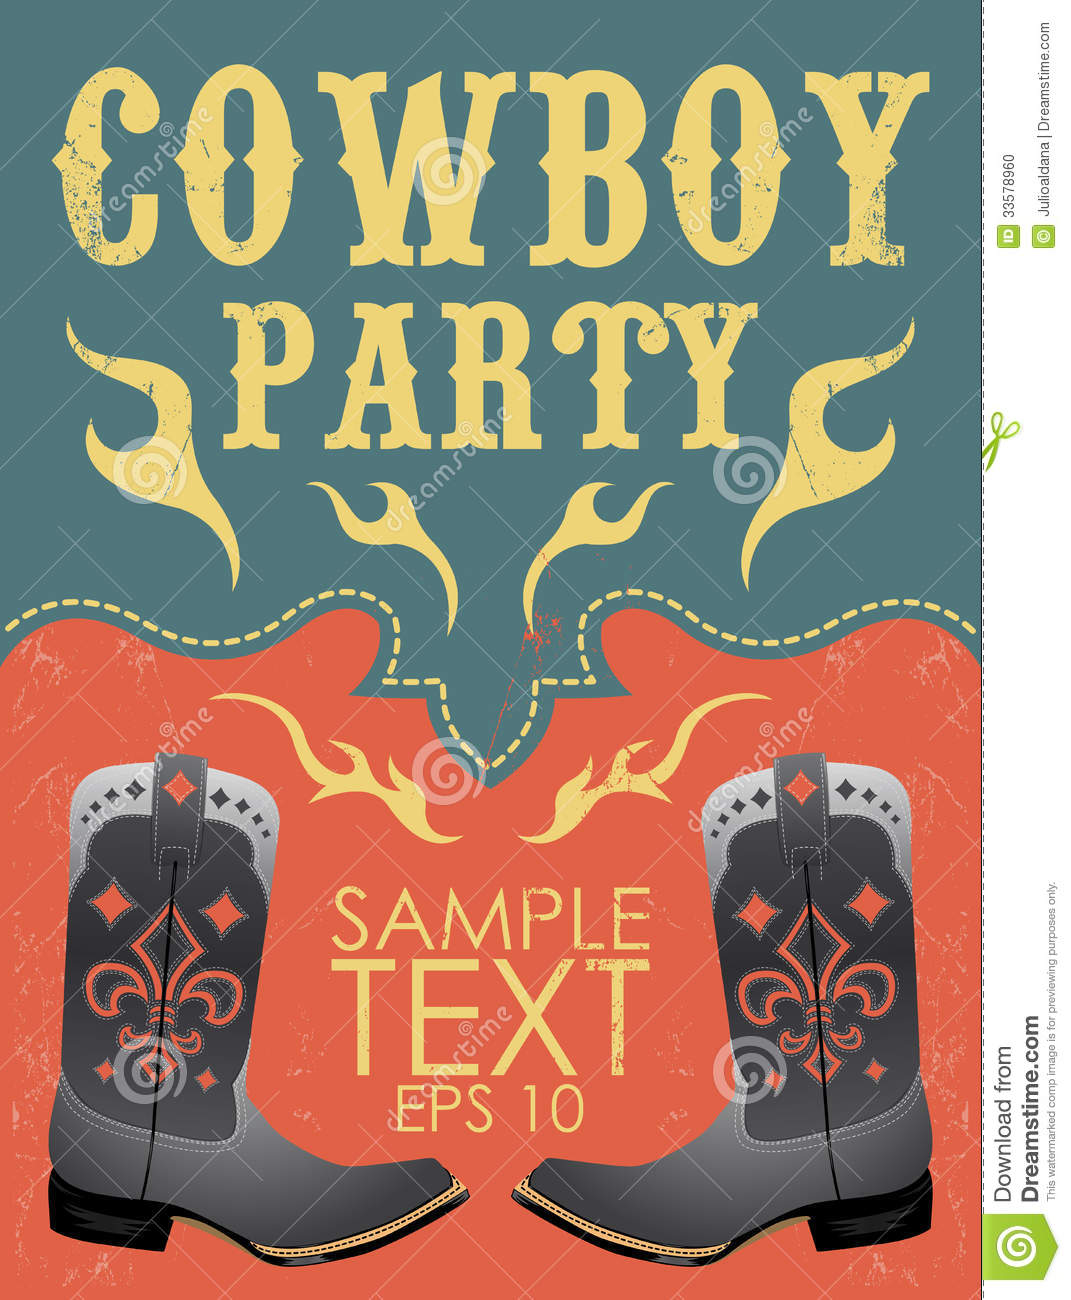 Cowboy Party Poster Vector Invitation Eps 10 Stock